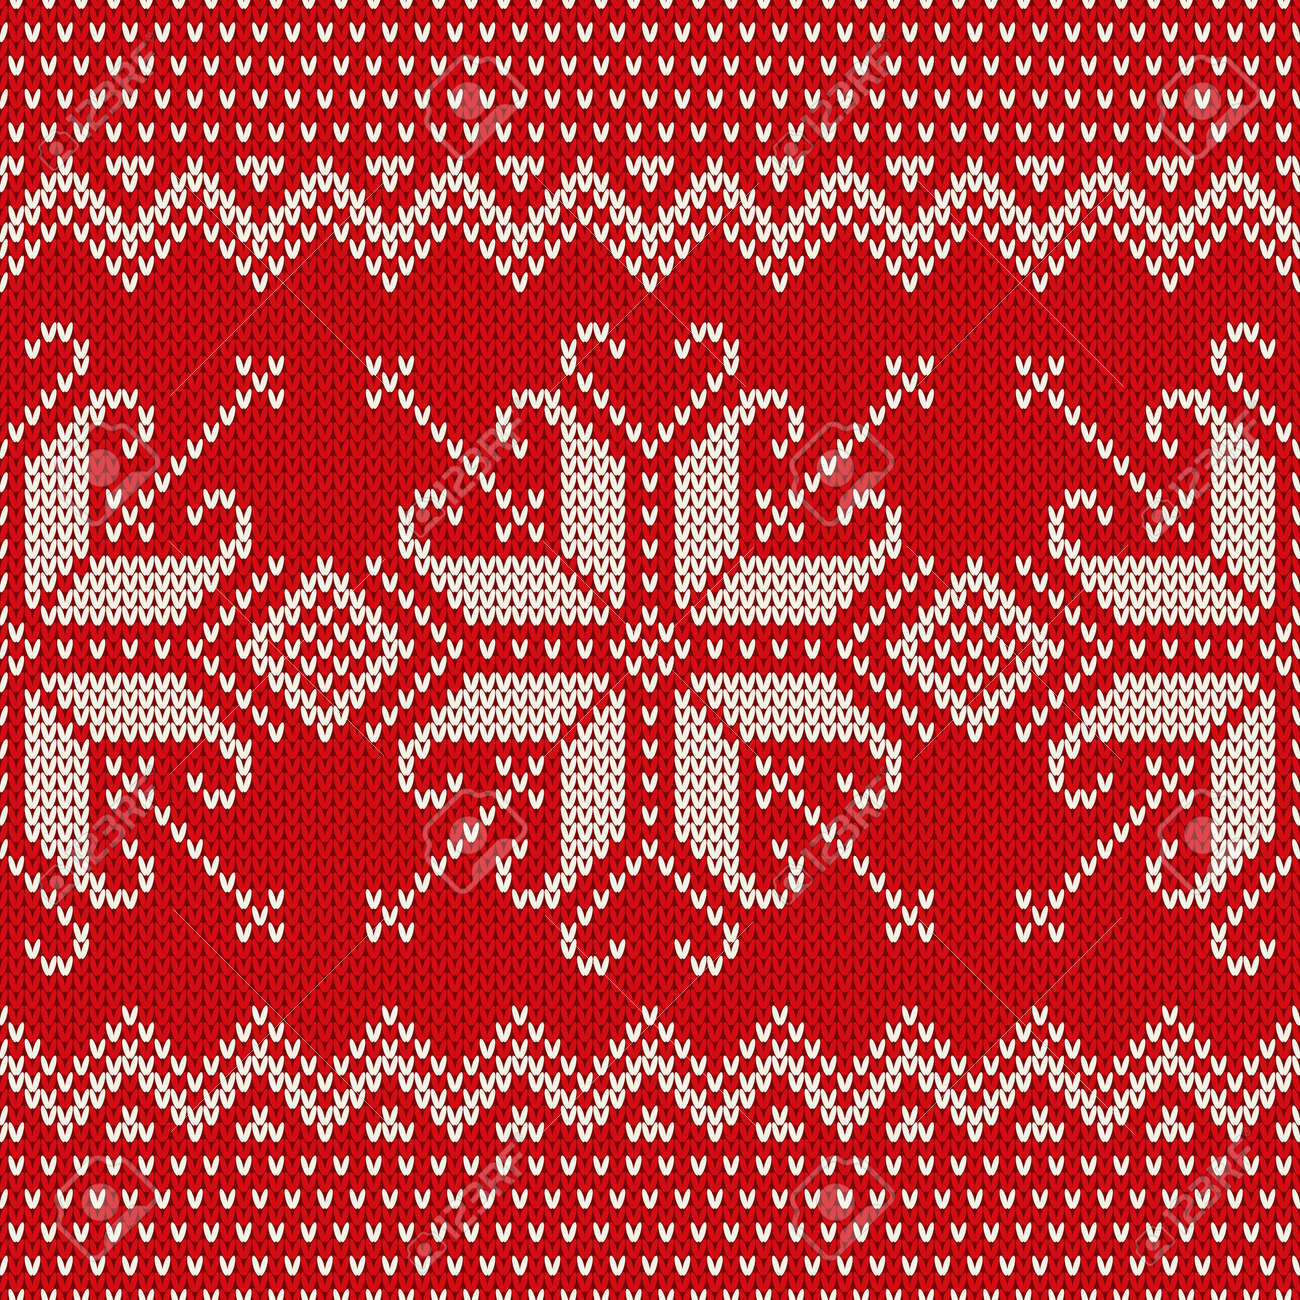 91a351f36602 Christmas Sweater Design. Seamless Knitted Pattern With Snowflakes ...